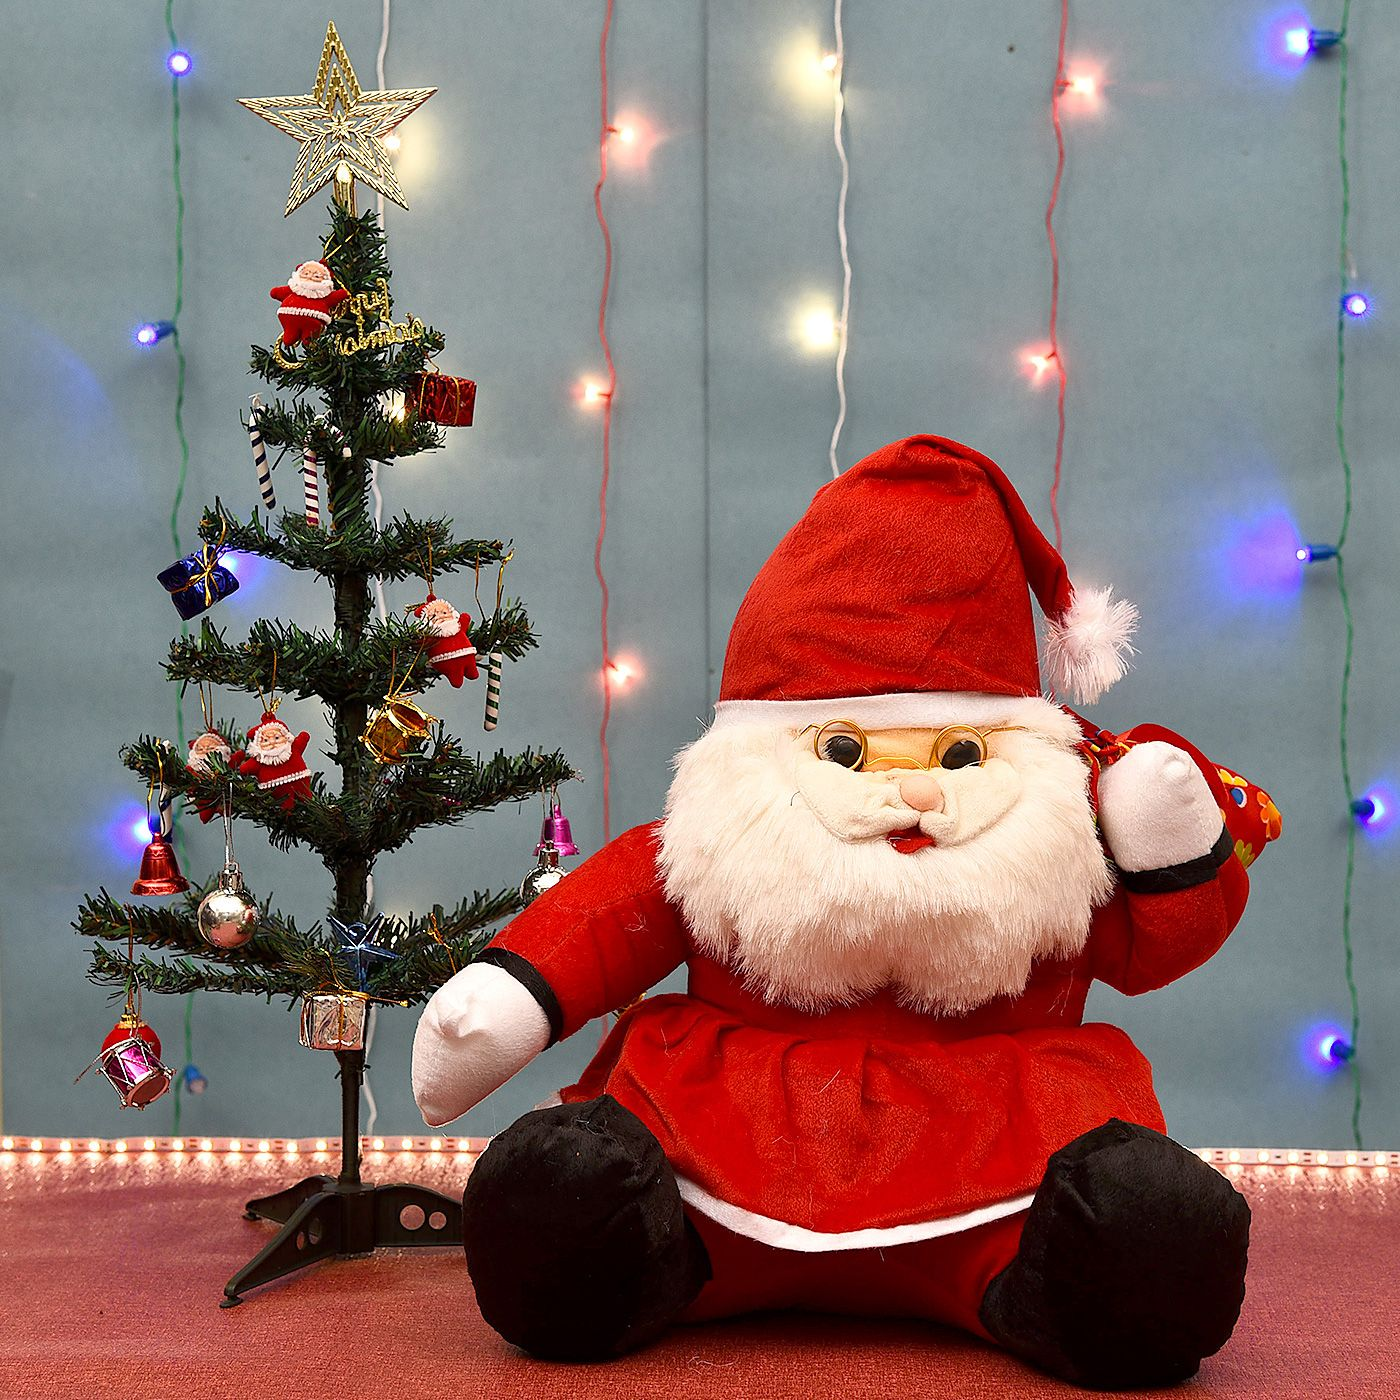 Sweet Santa Teddy With Christmas Tree And Decoratives Online Christmas Gifts Buy Christmas Gifts Online Gifts